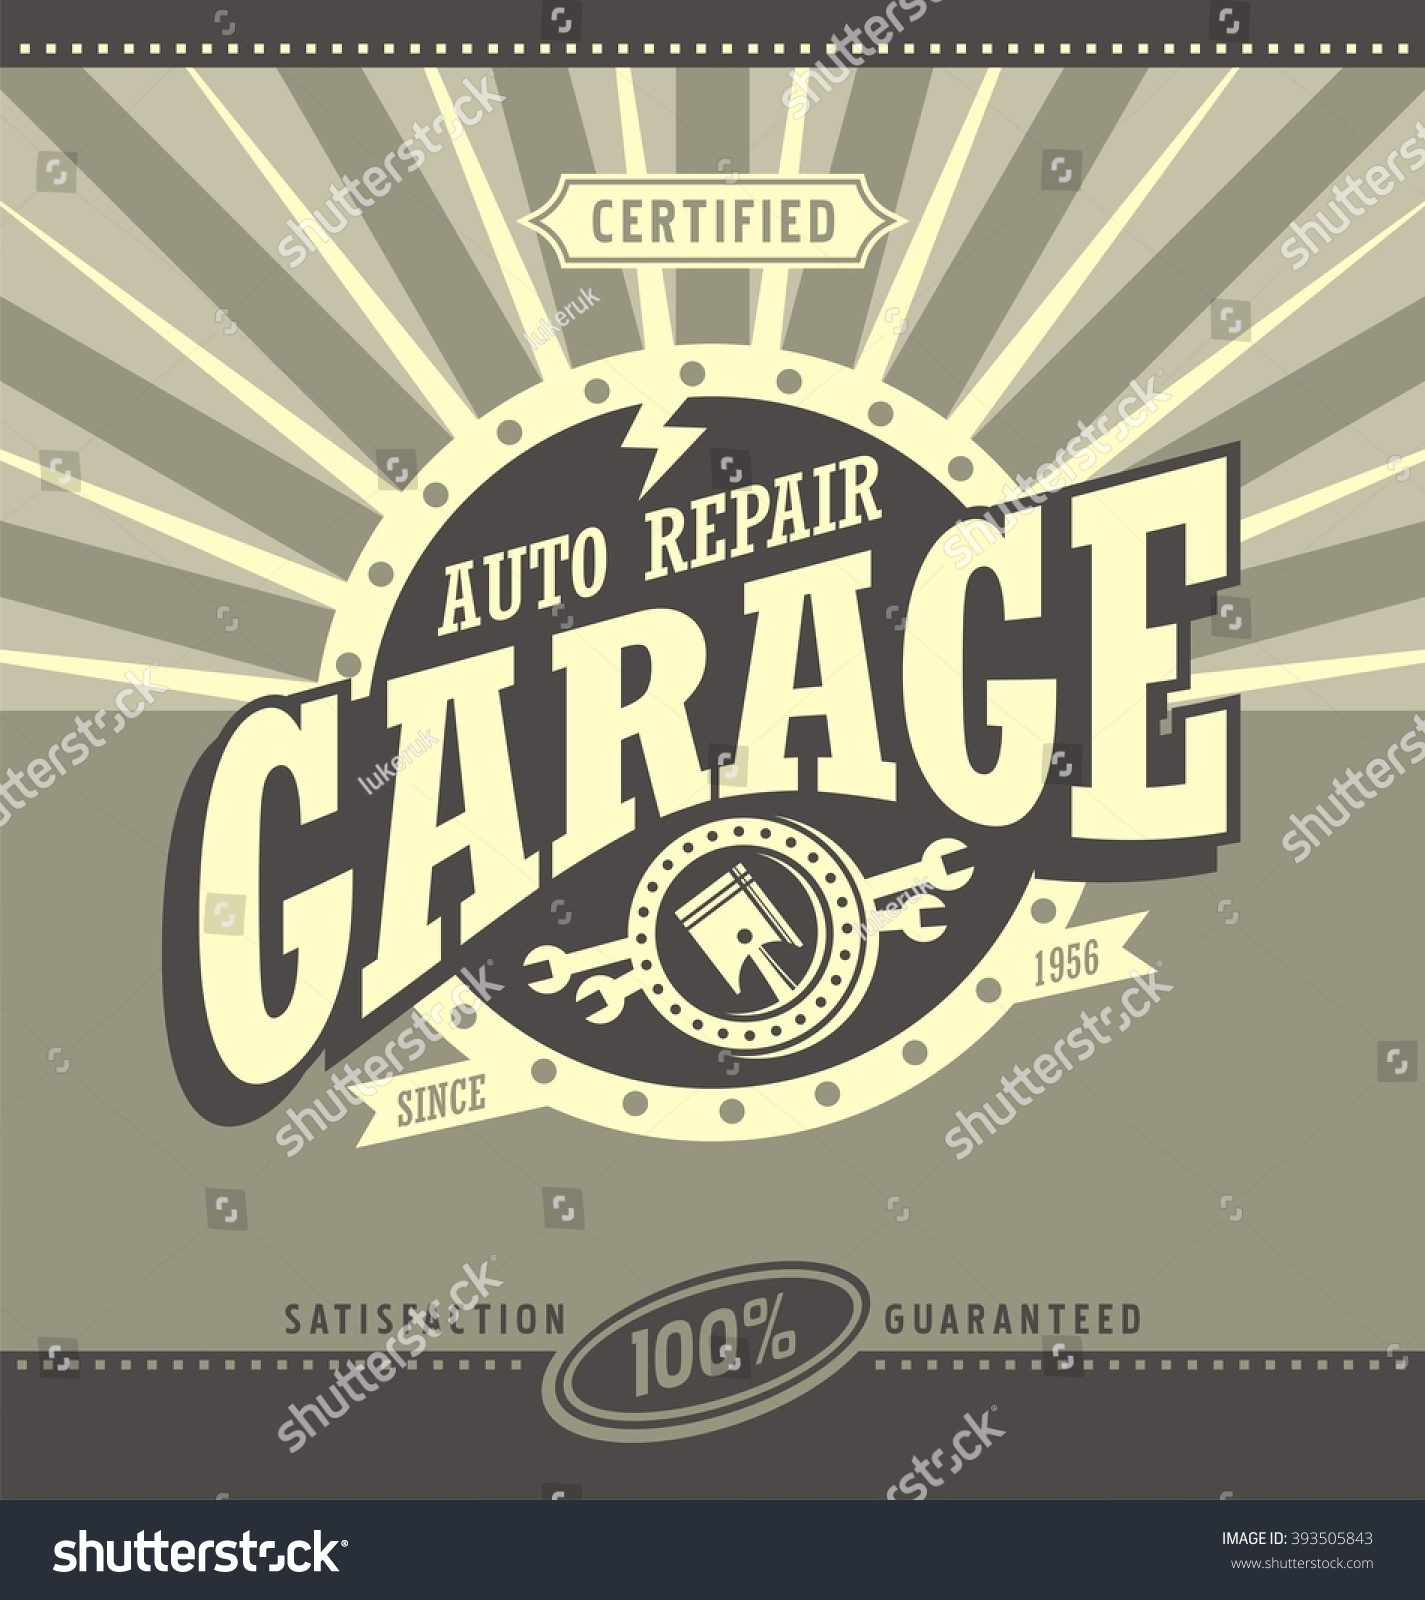 Garage Design Template Classic Garage Retro Banner Design Concept Stock Vector Royalty